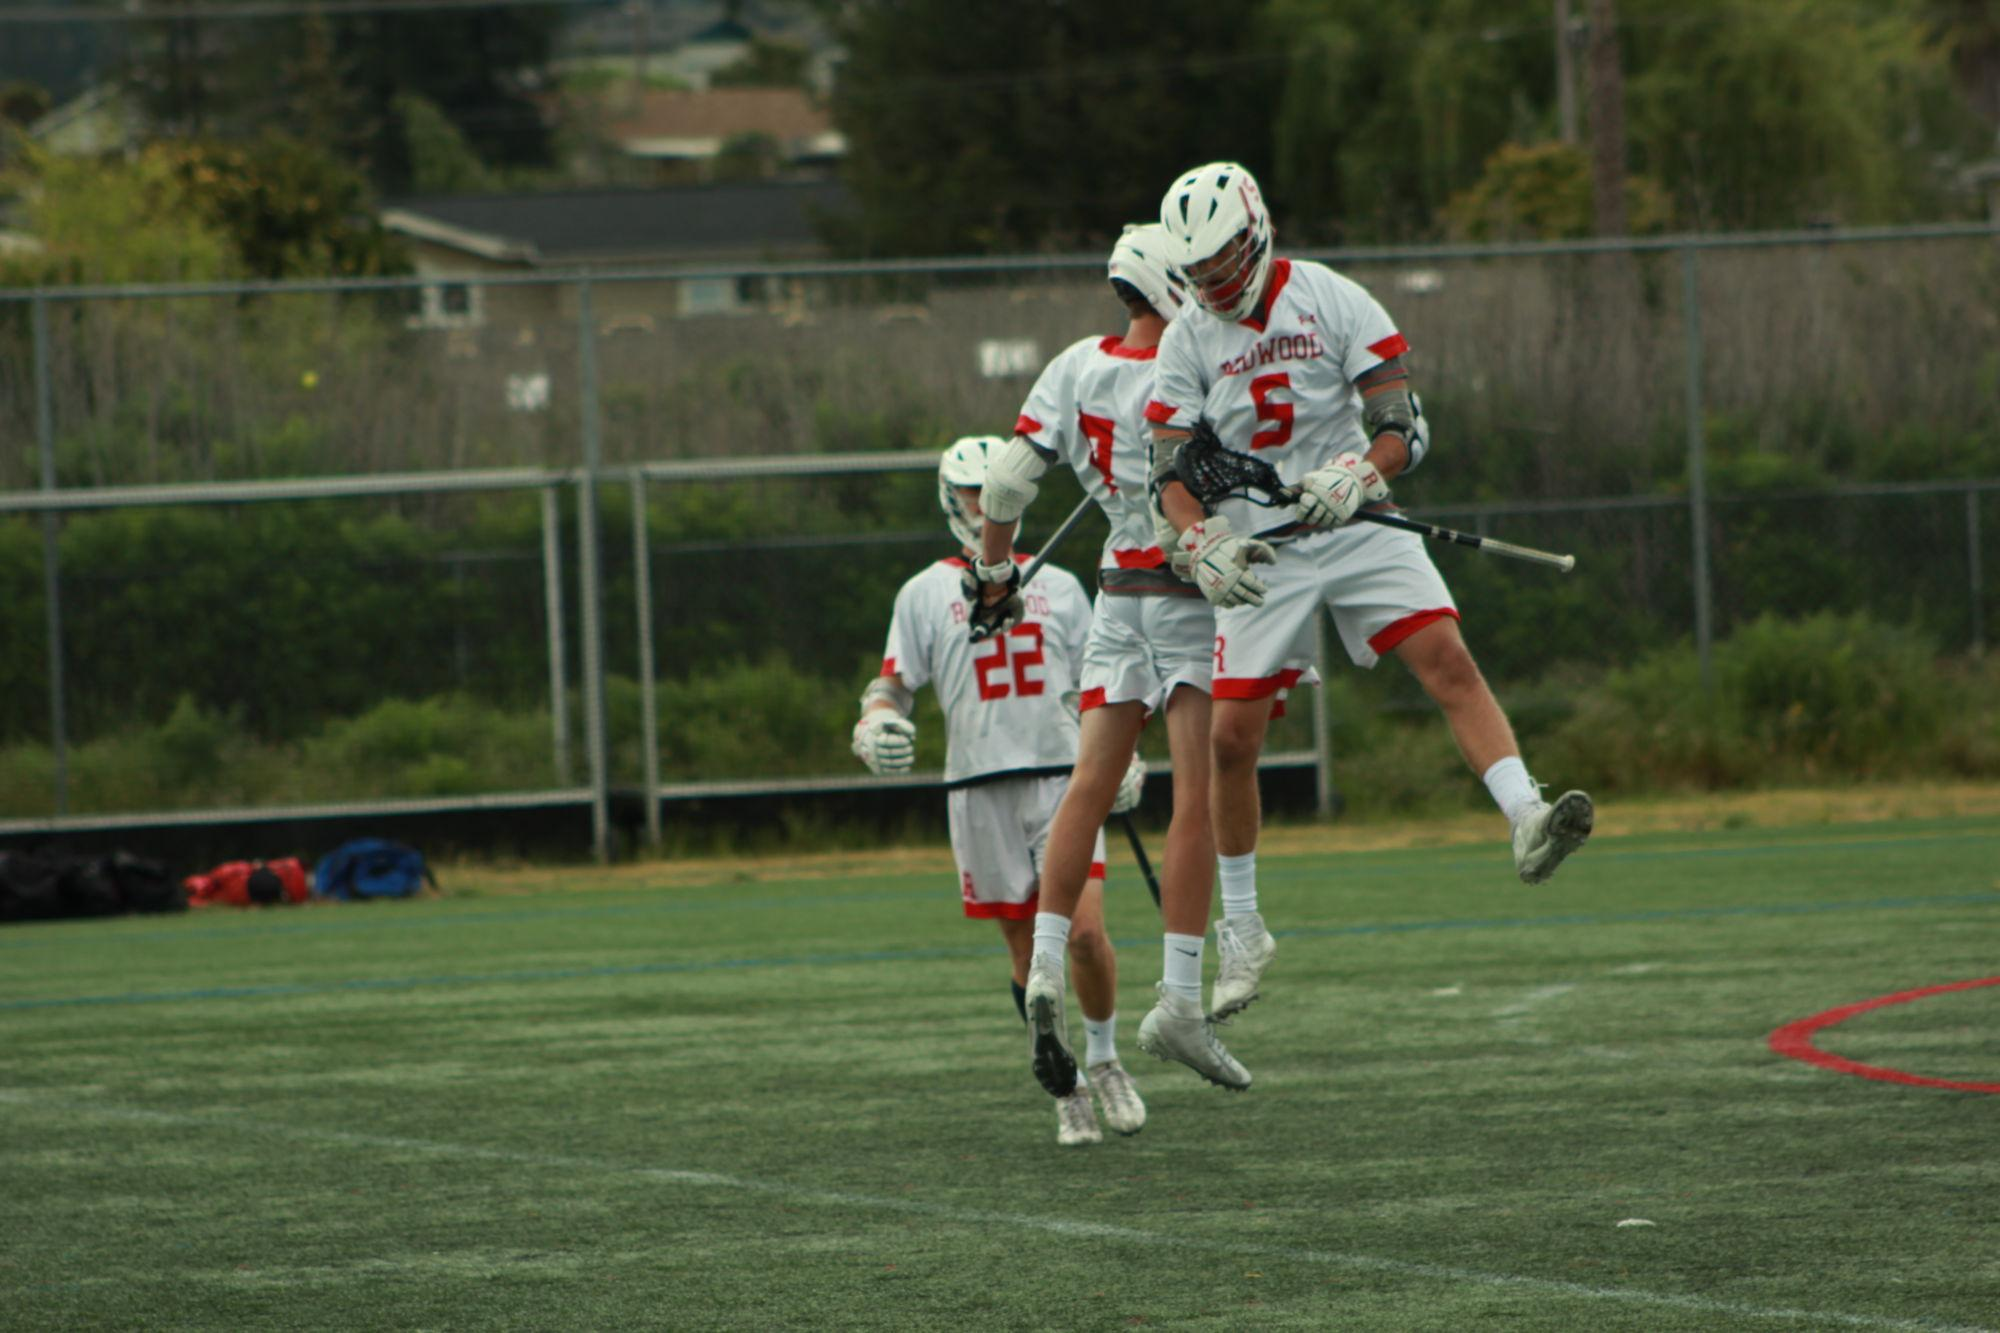 Junior+Harri+Hetrick+celebrates+with+his+teammate+after+Redwood+scores+a+goal.